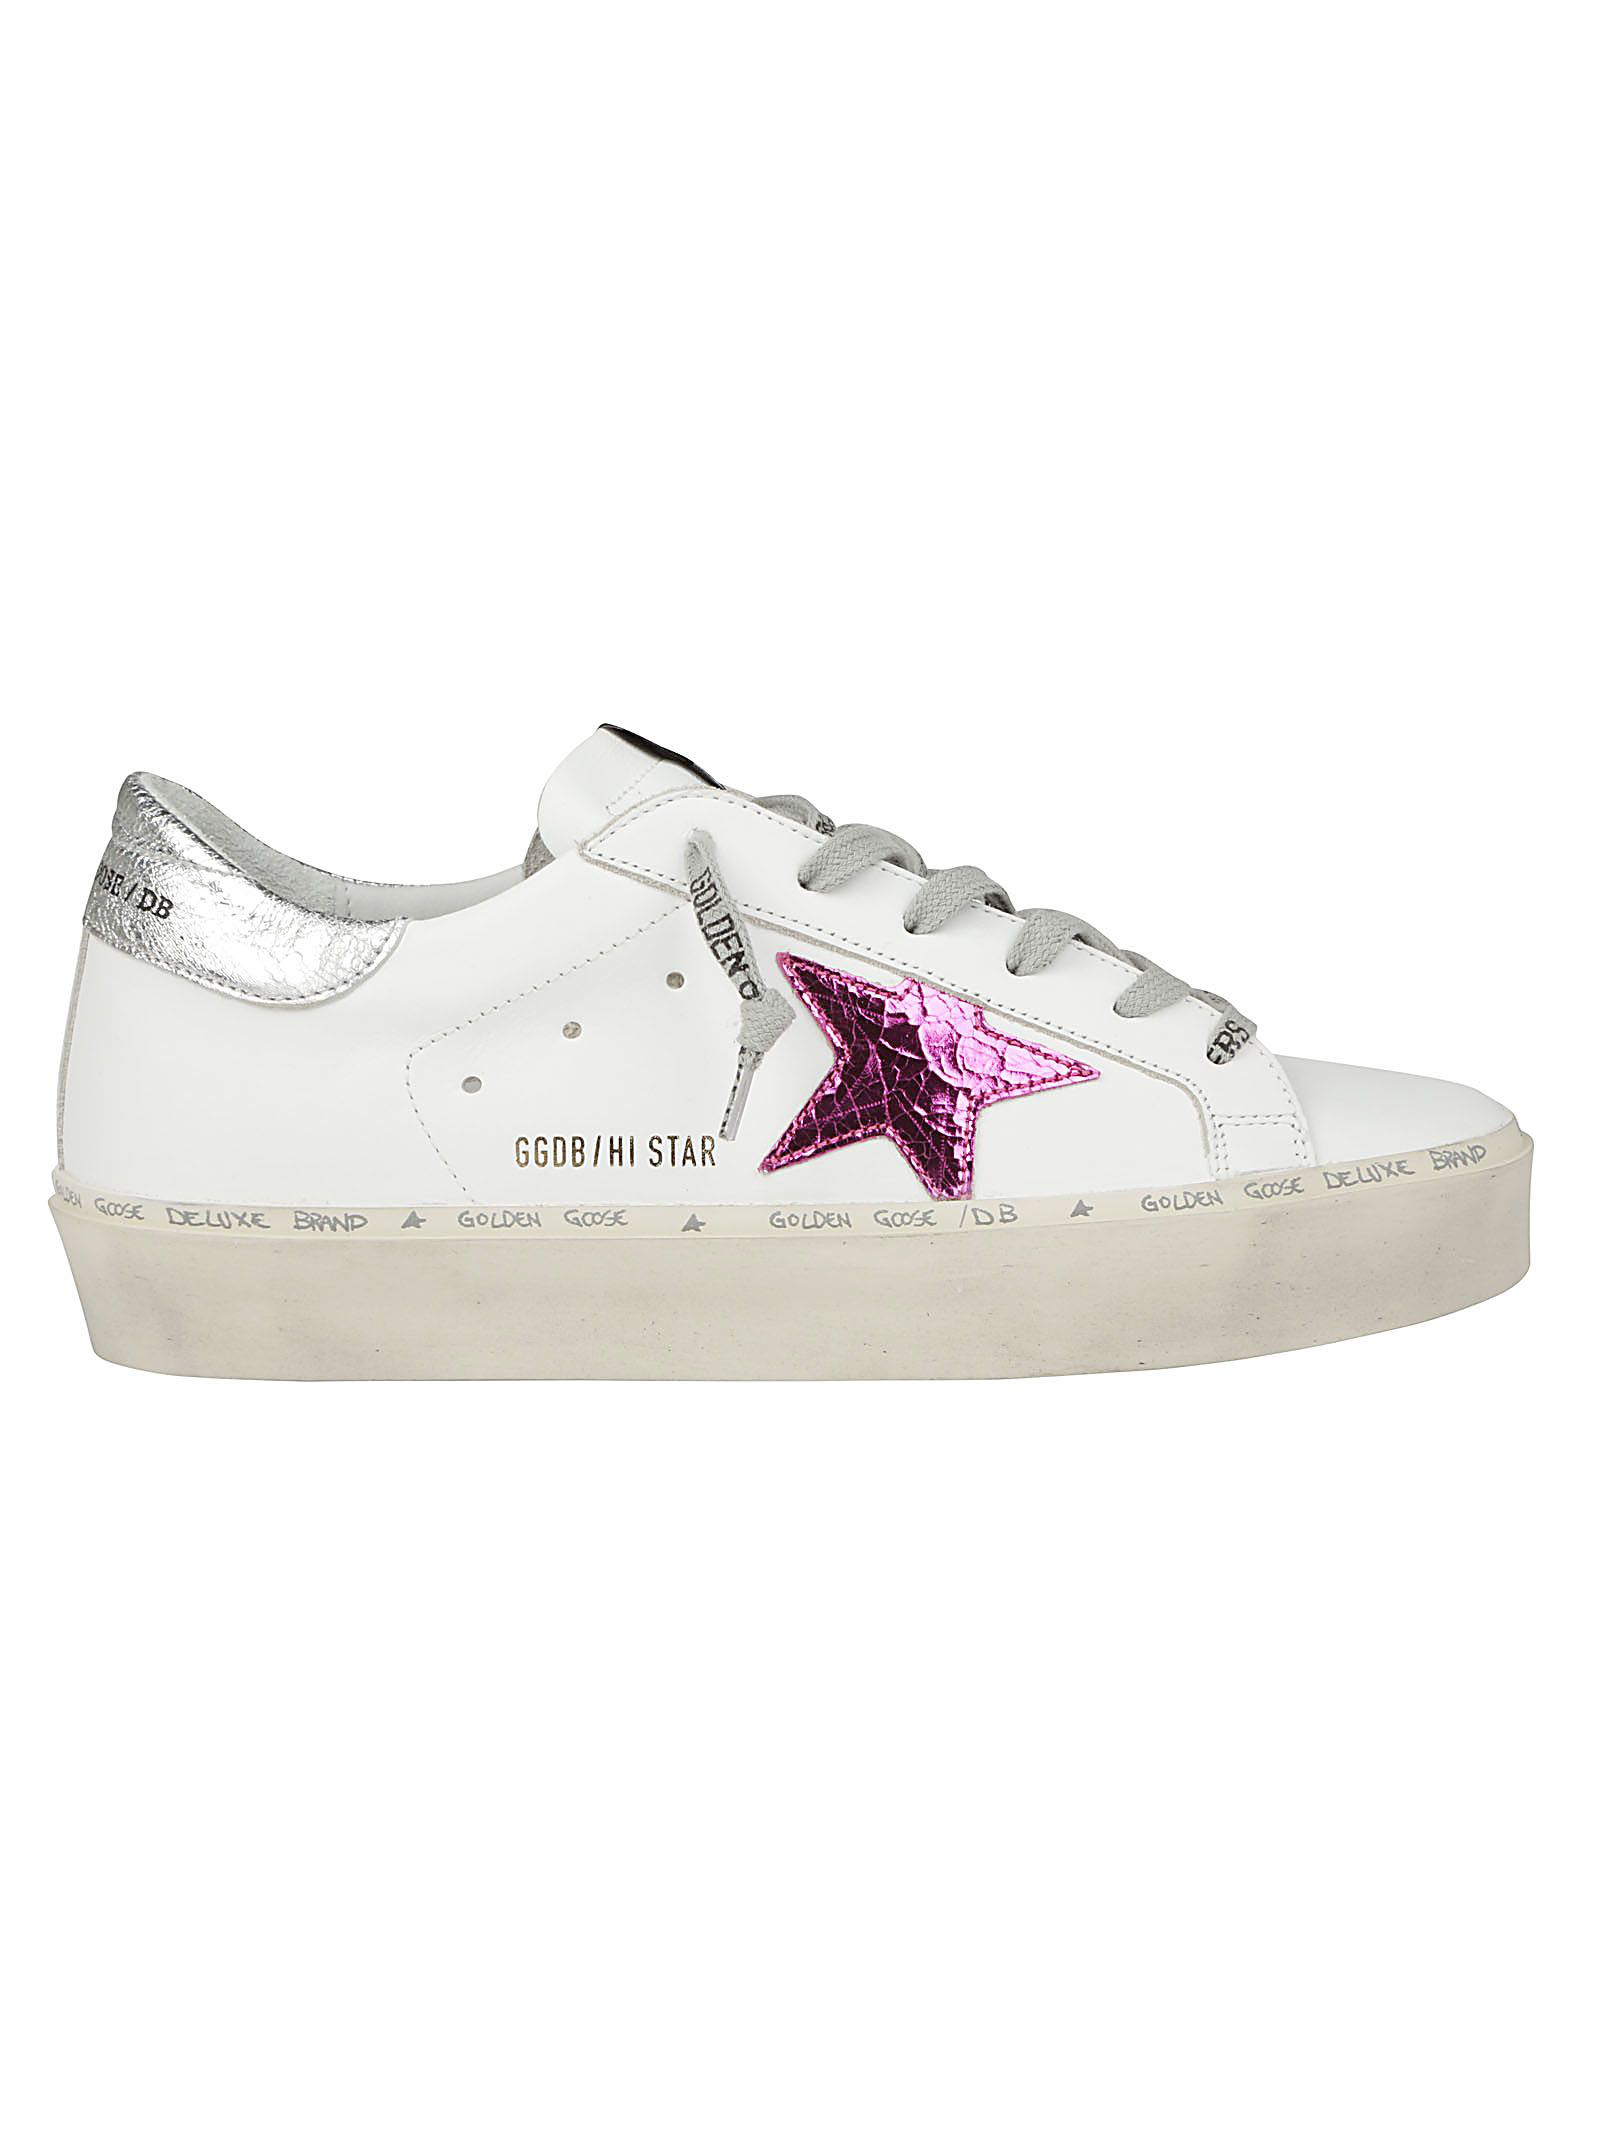 48a8f4eca8d5 Golden Goose Sneakers Hi Star In White Silver Pink